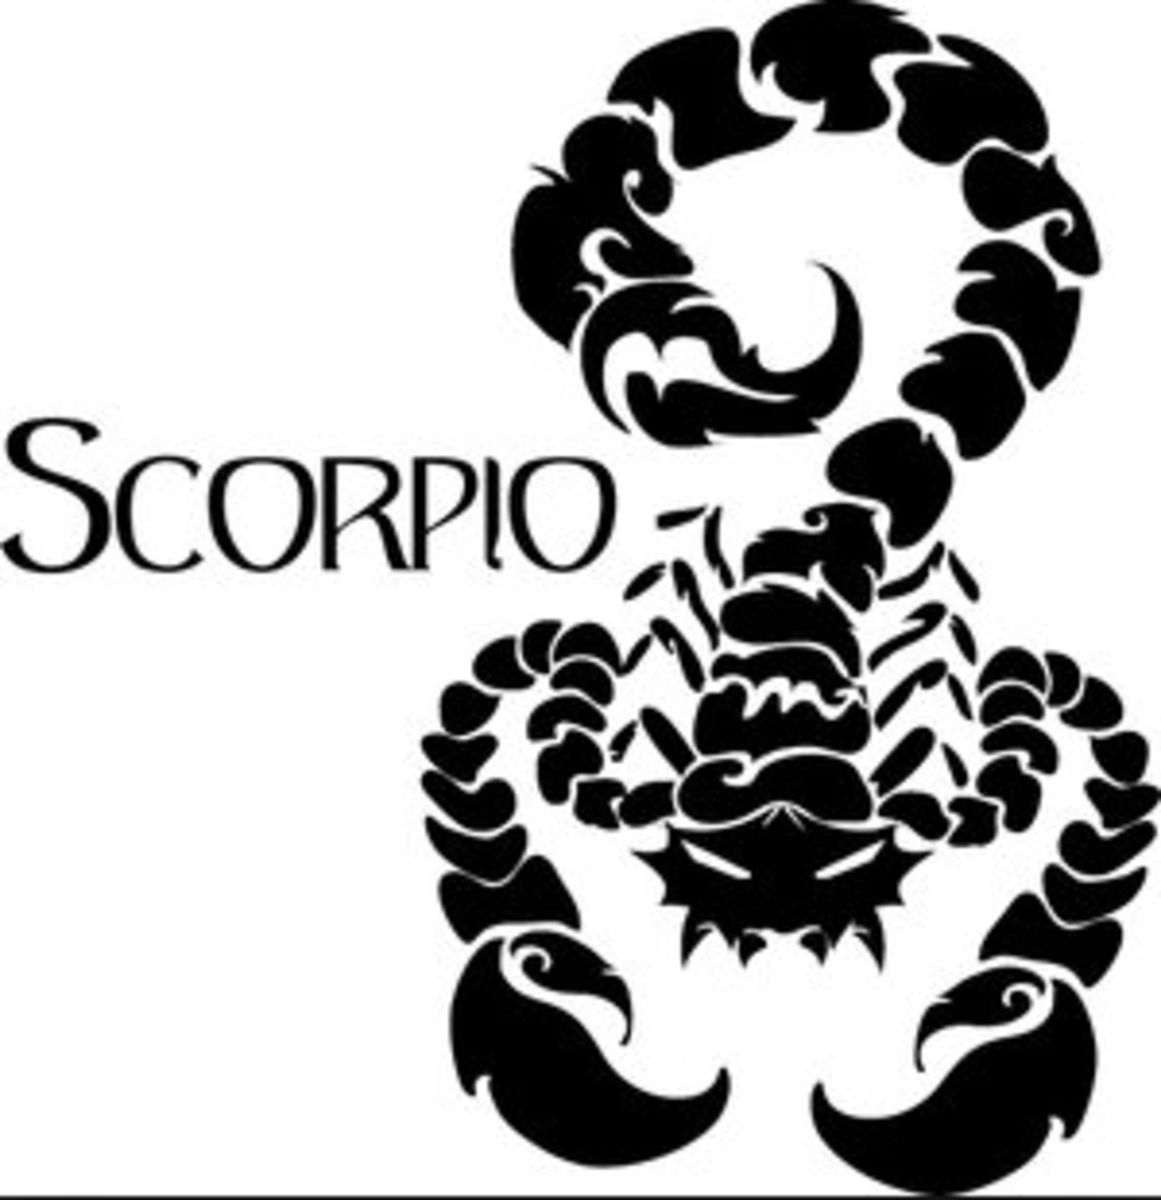 Working for a Scorpio Boss: Tread Lightly